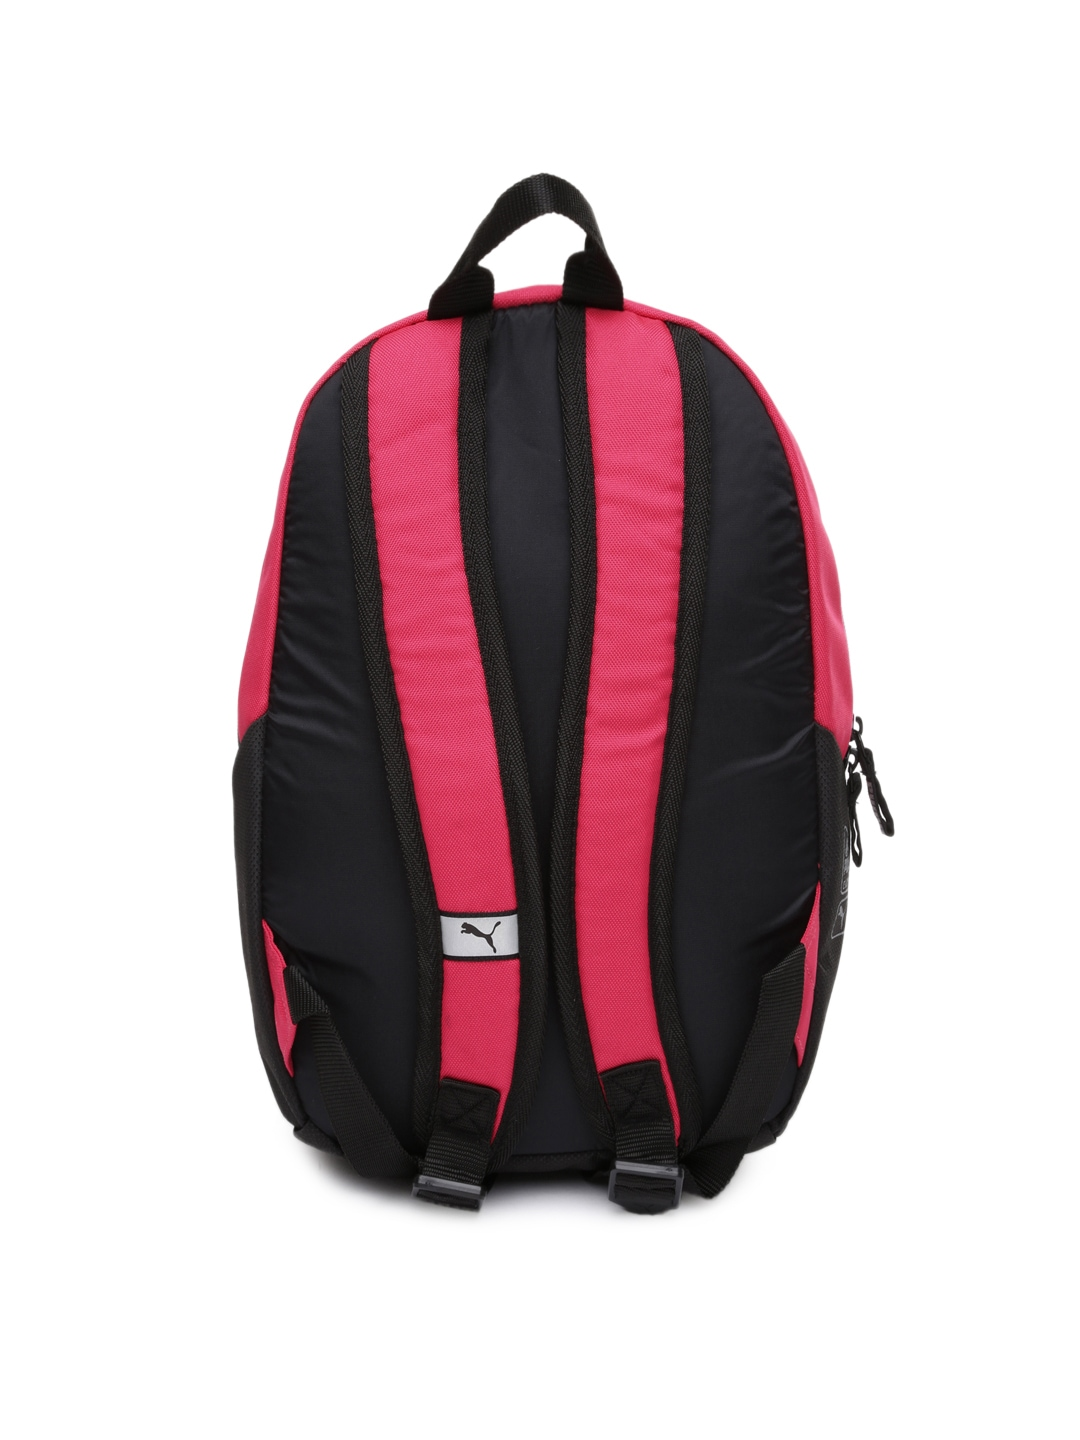 Shop a wide variety of PUMA Backpacks & Bags at DICK'S Sporting Goods, the leading retailer for all of your sporting good needs.